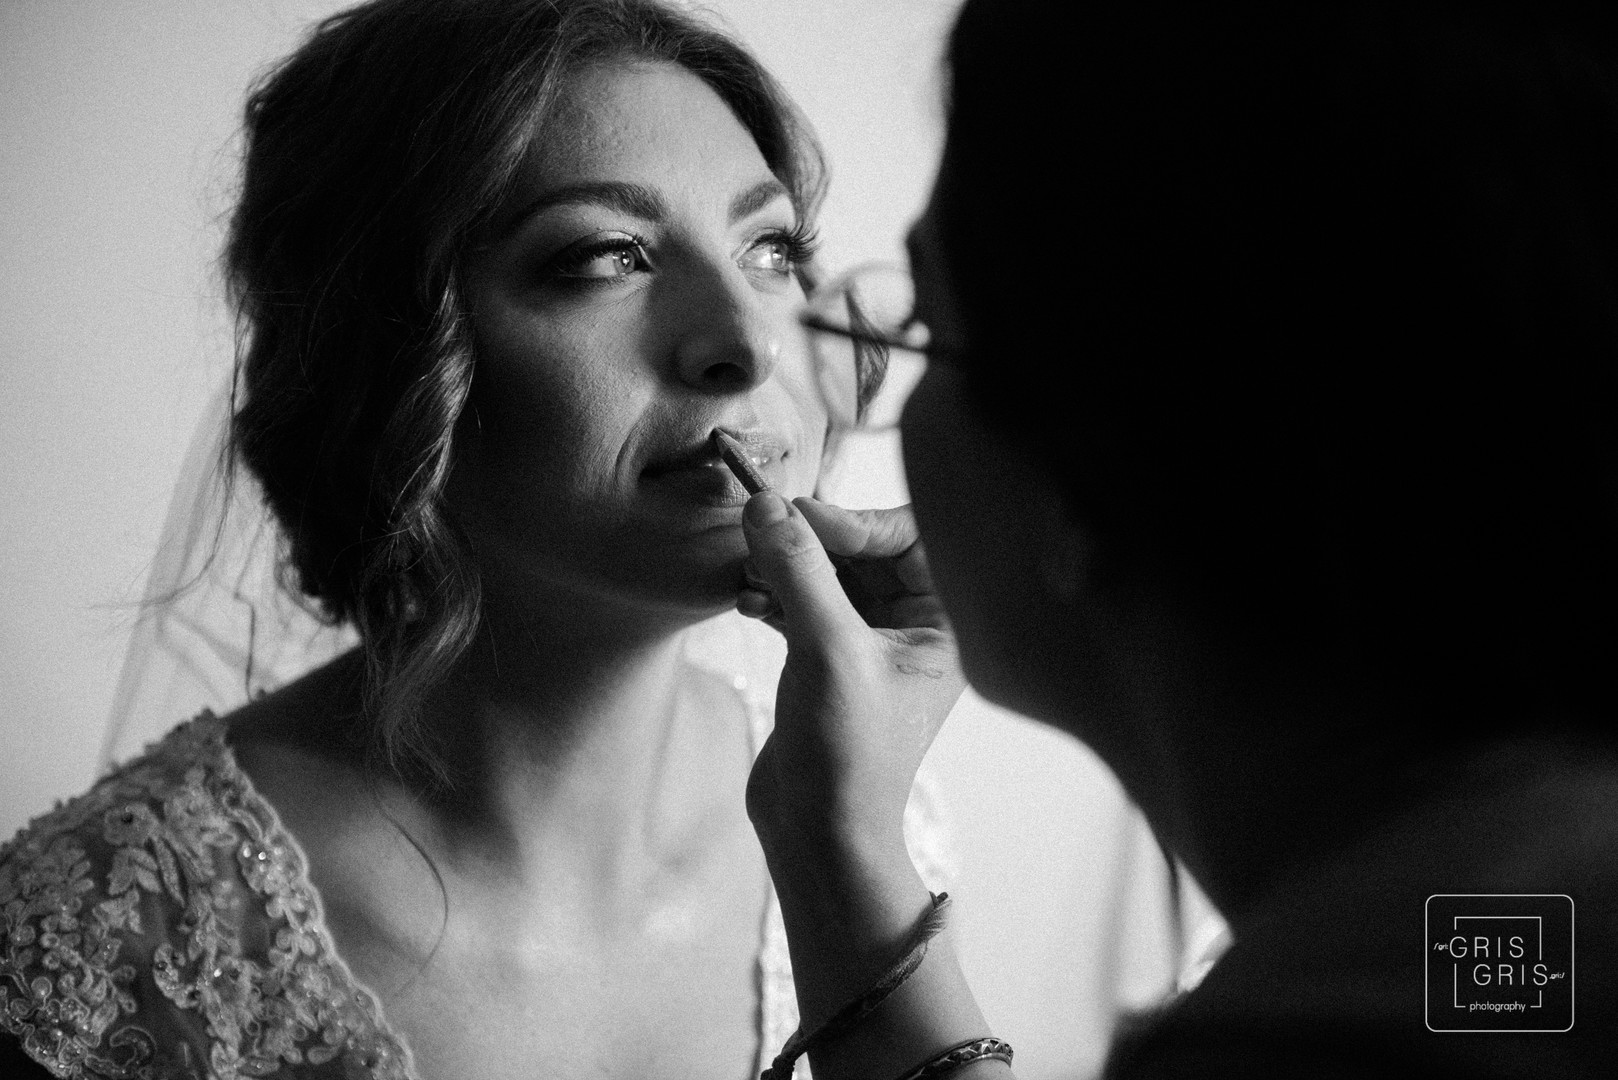 bride get finishing touche of makeup before her wedding